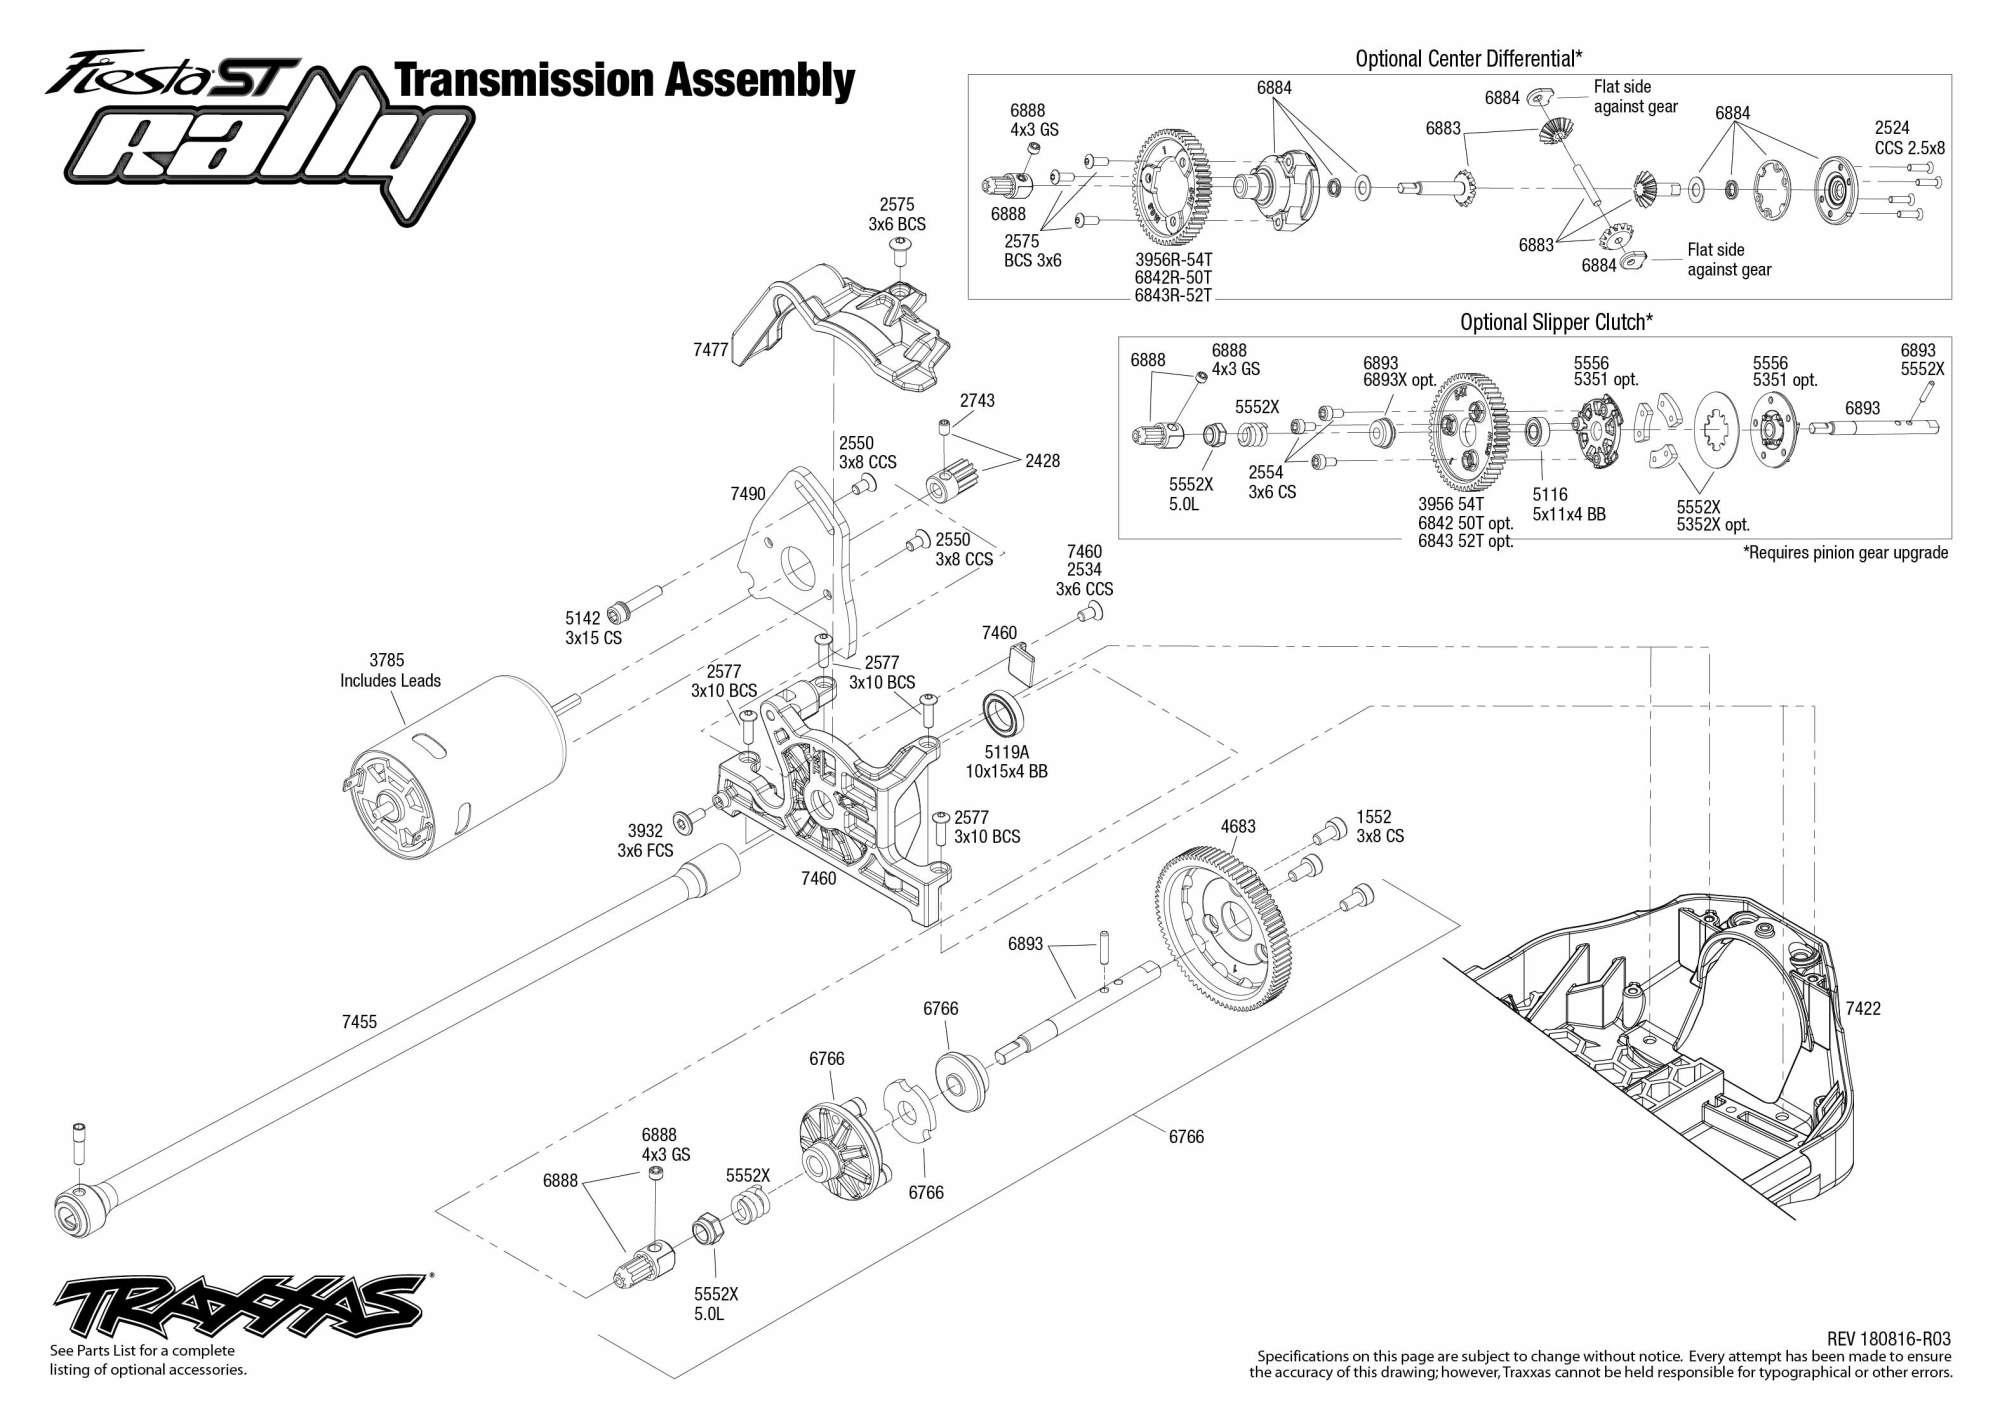 hight resolution of ford fiesta transmission diagram wiring diagram long ford festiva transmission diagram